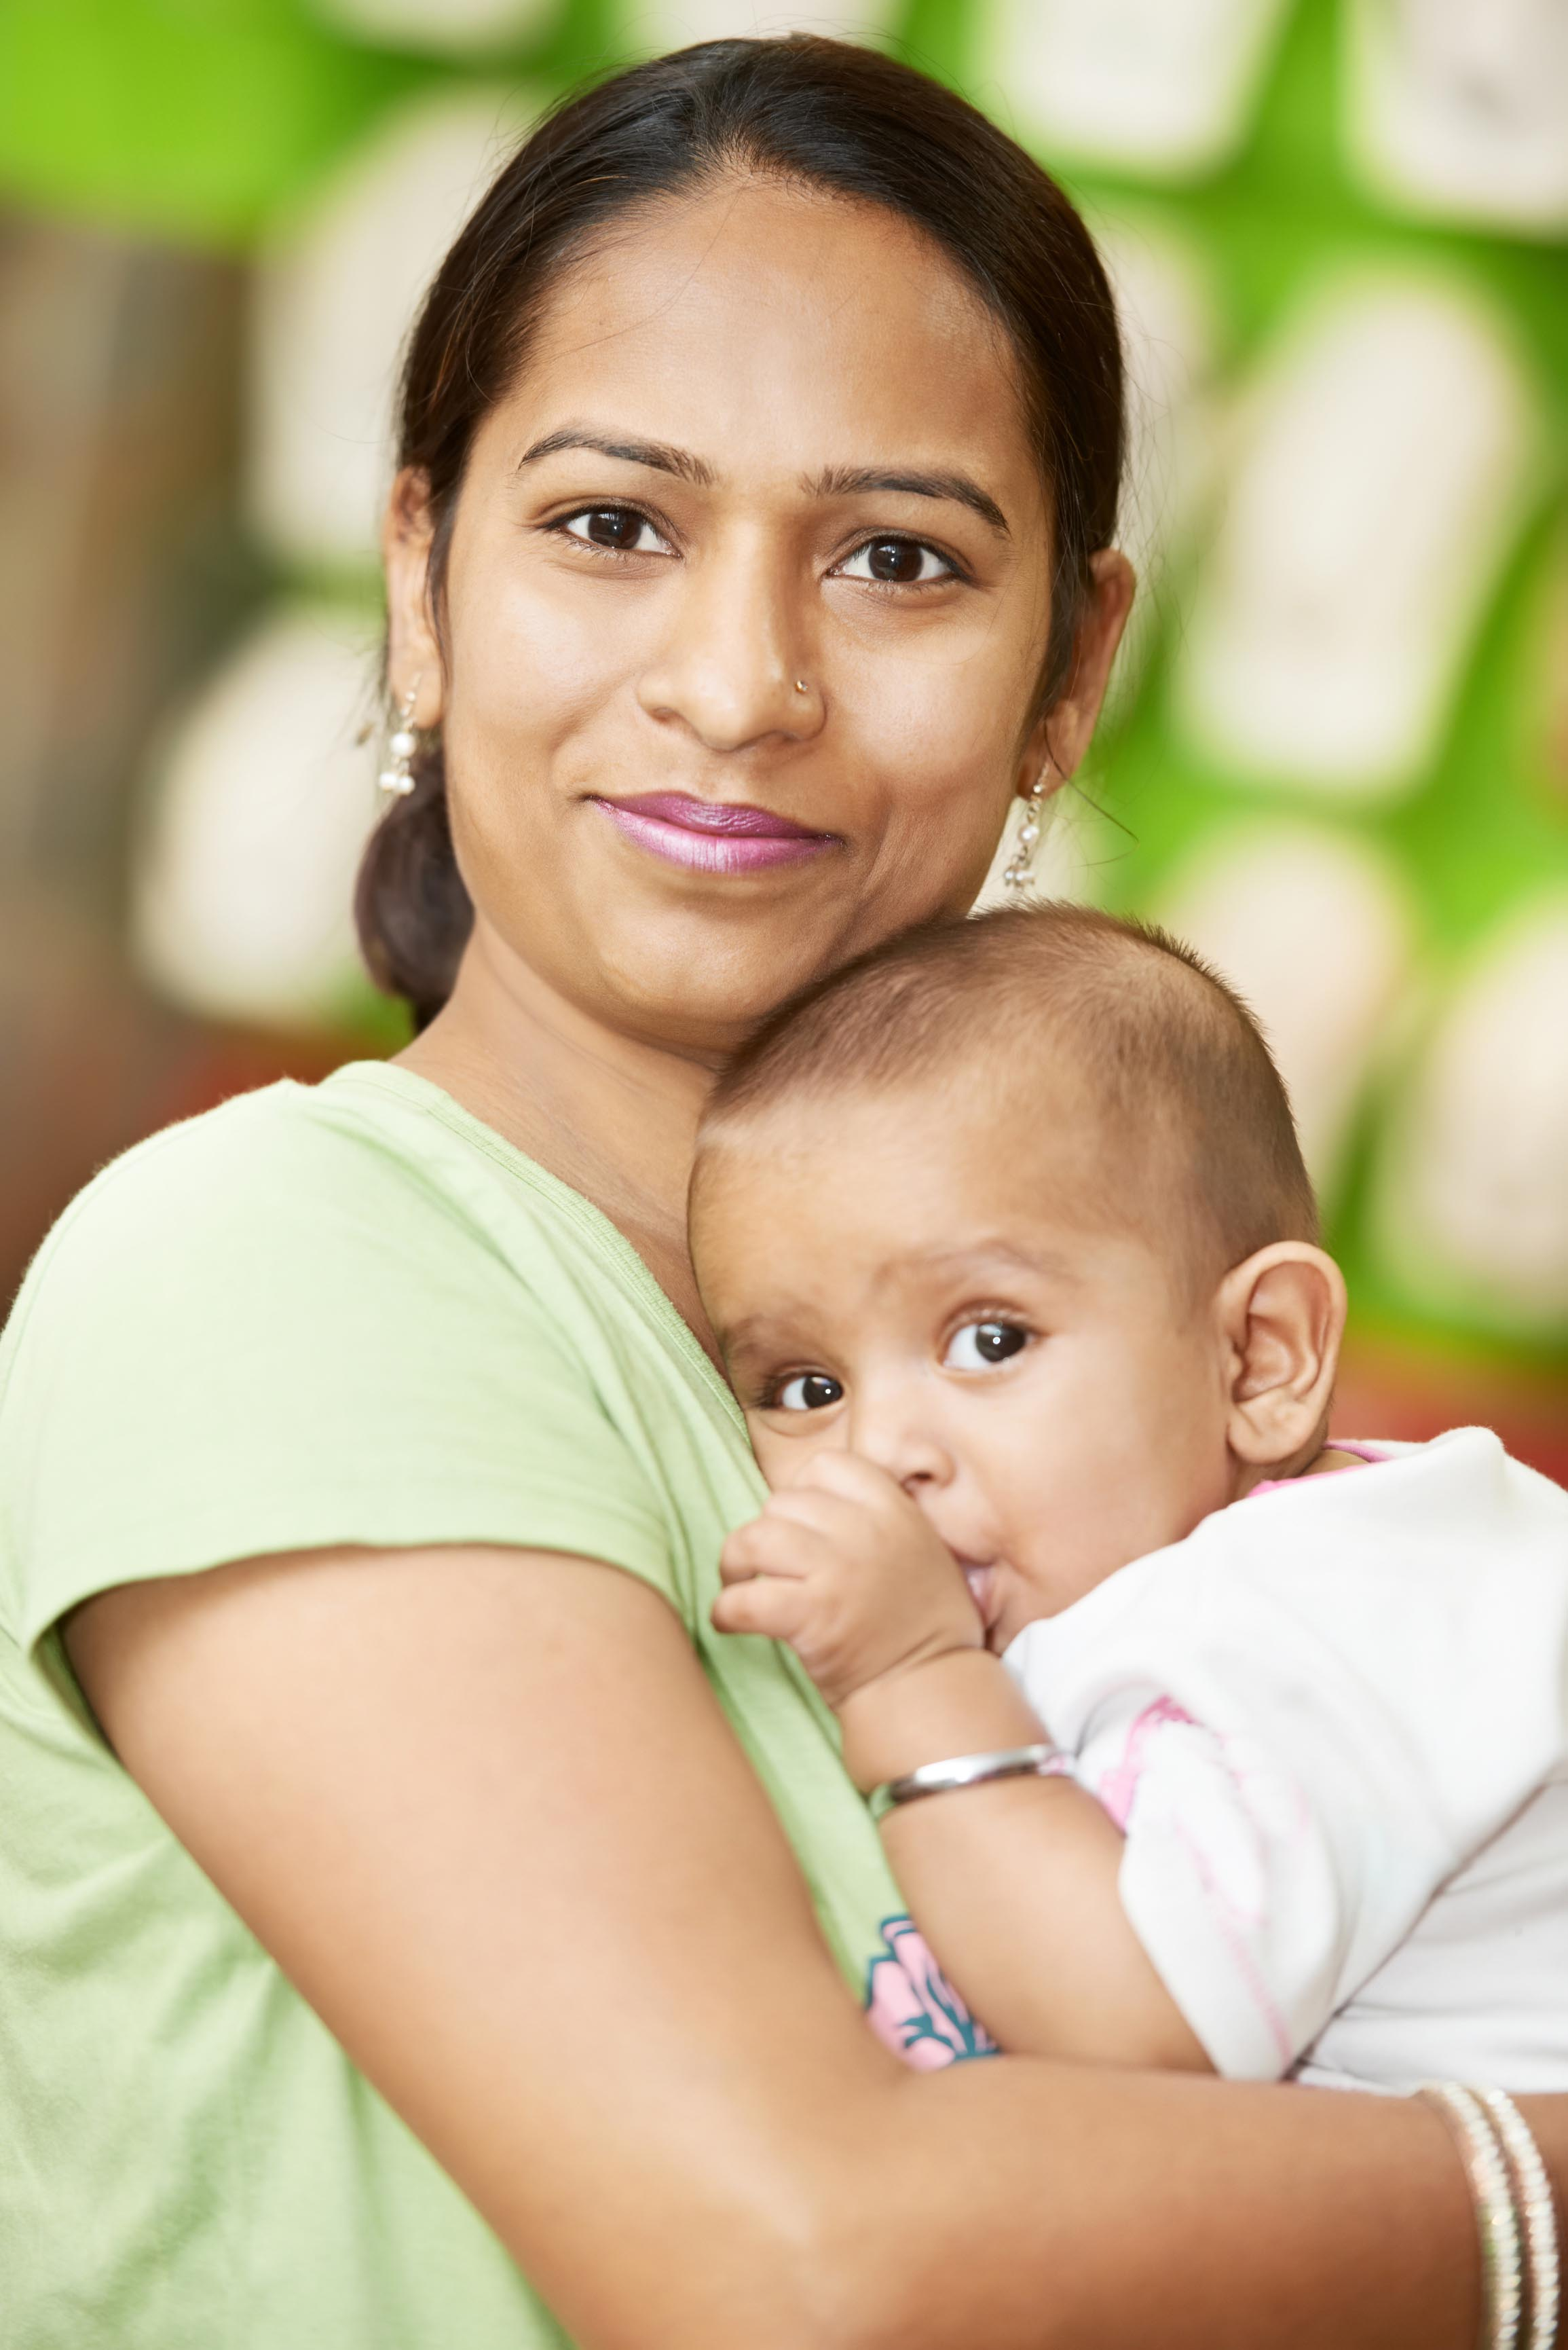 Indian woman with baby - Dreamstime Stock Image